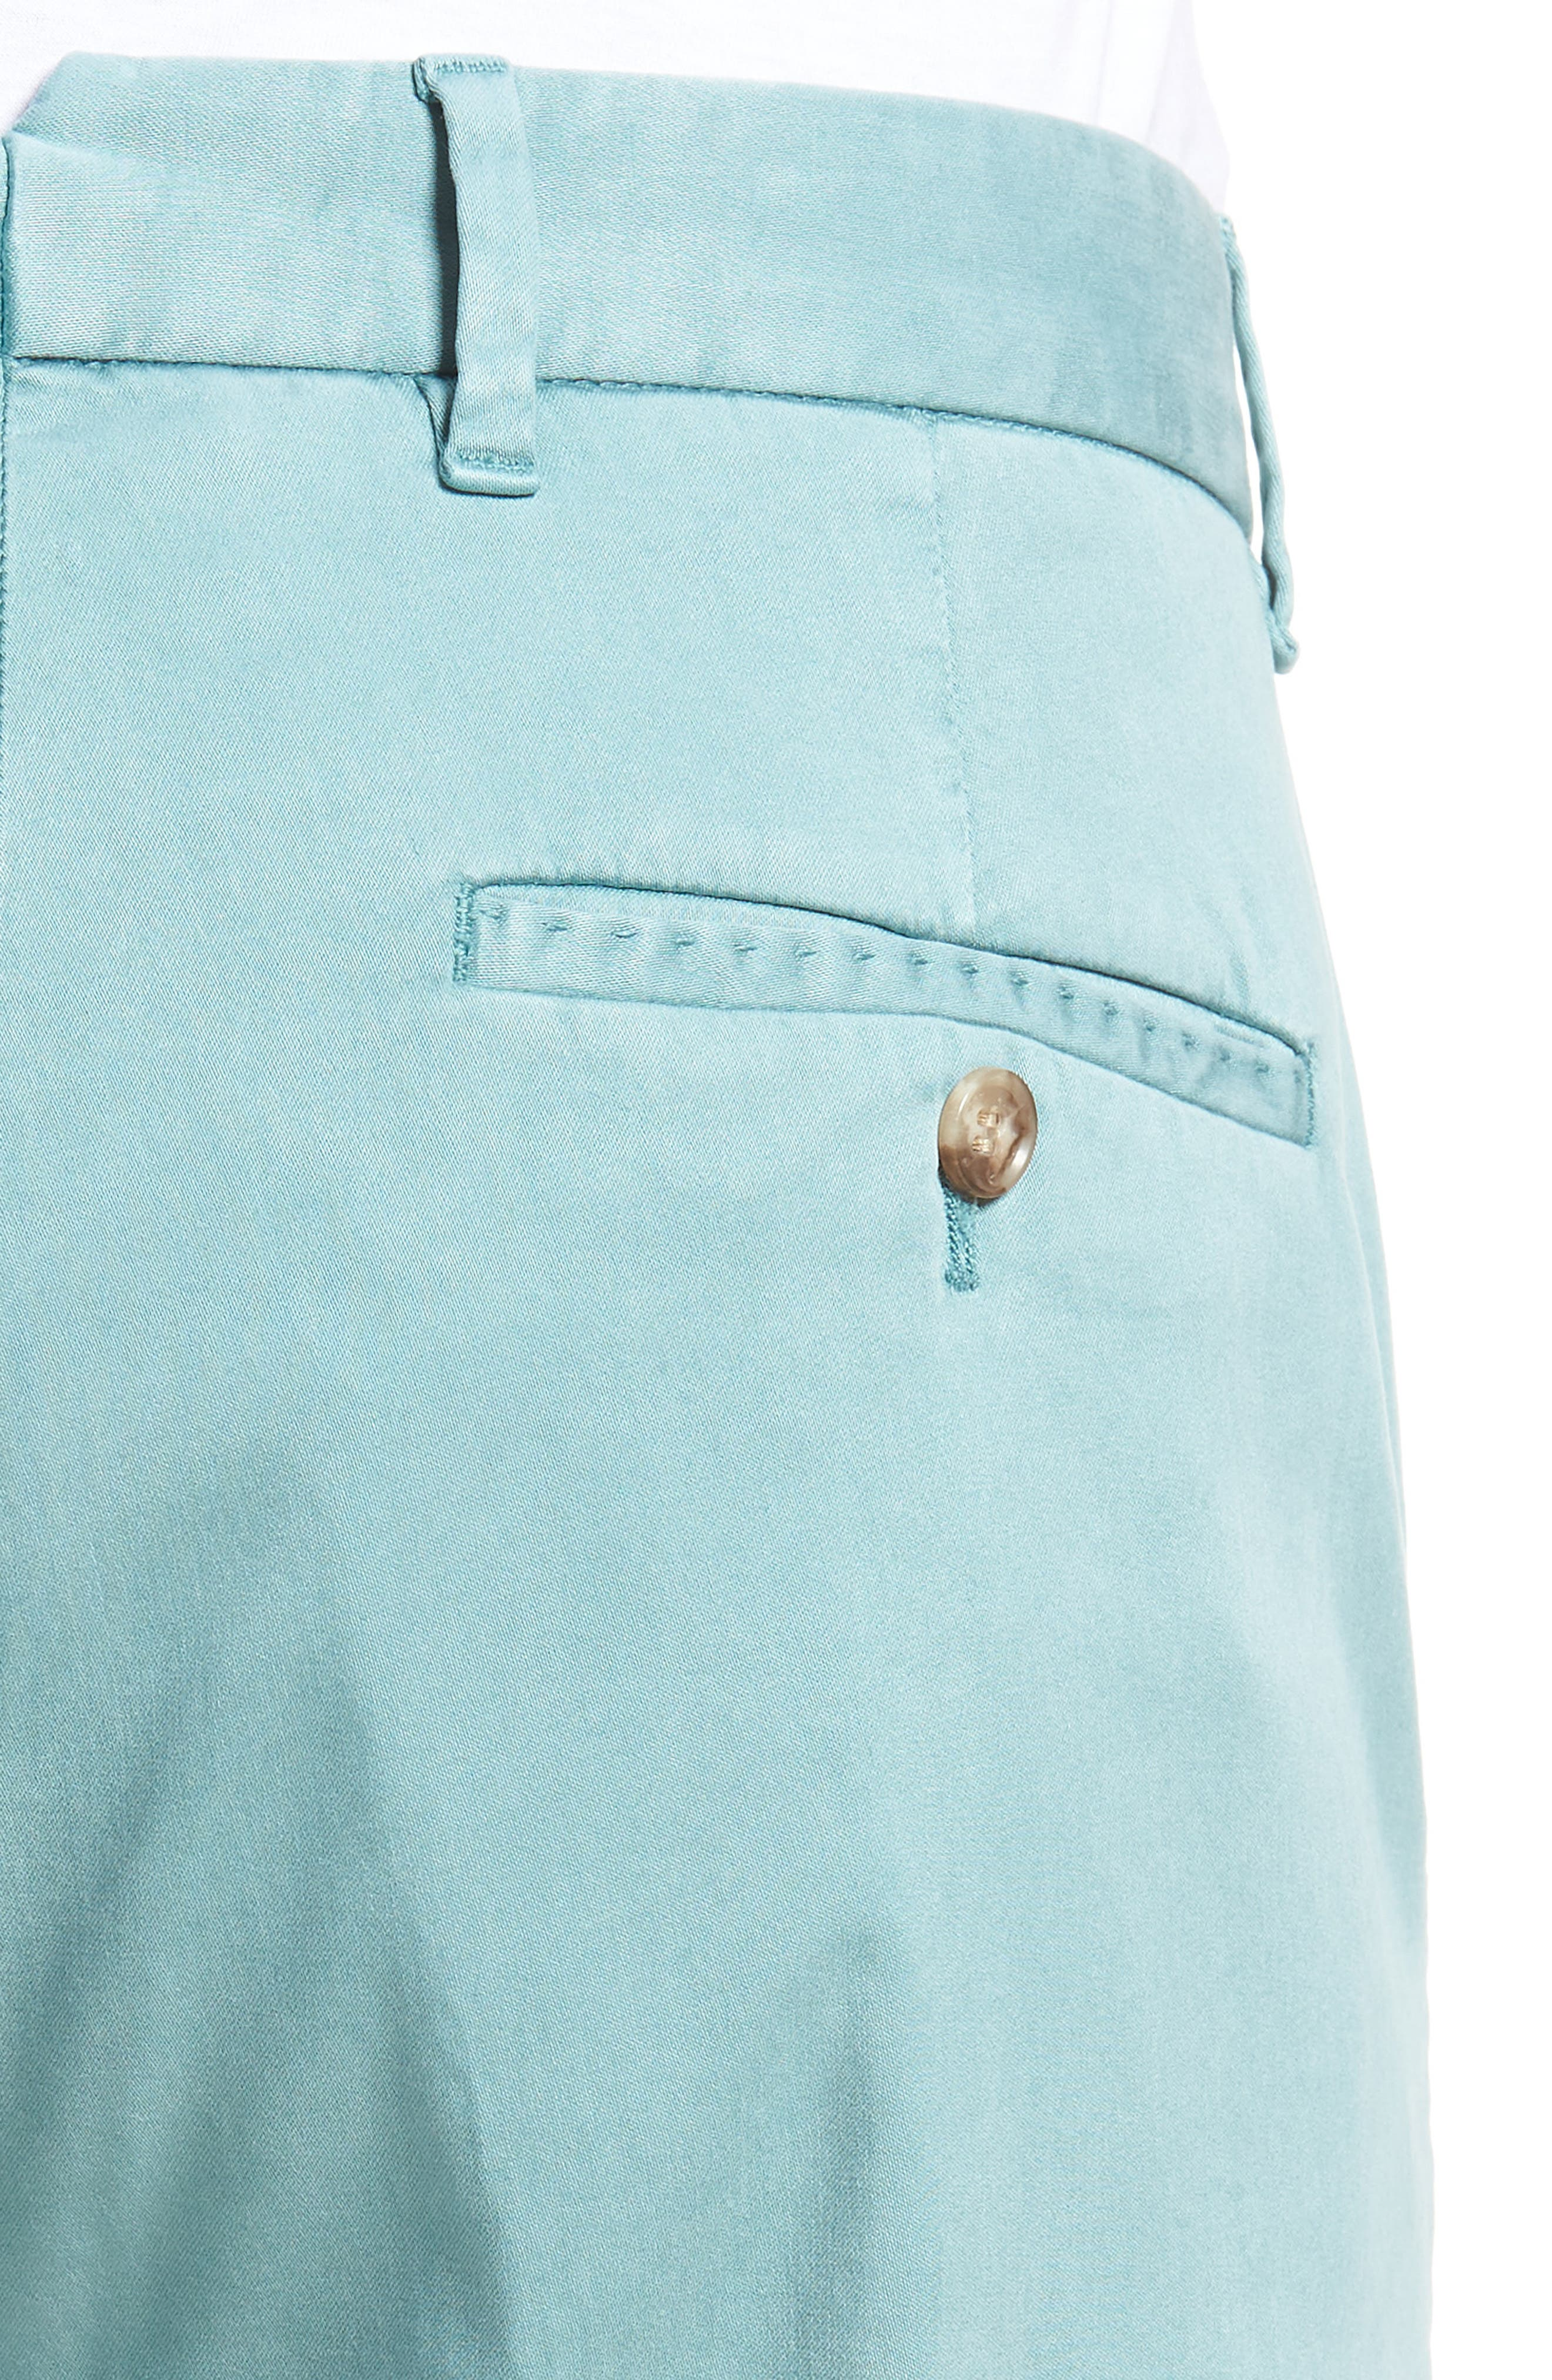 Aster Straight Fit Pants,                             Alternate thumbnail 4, color,                             TEAL